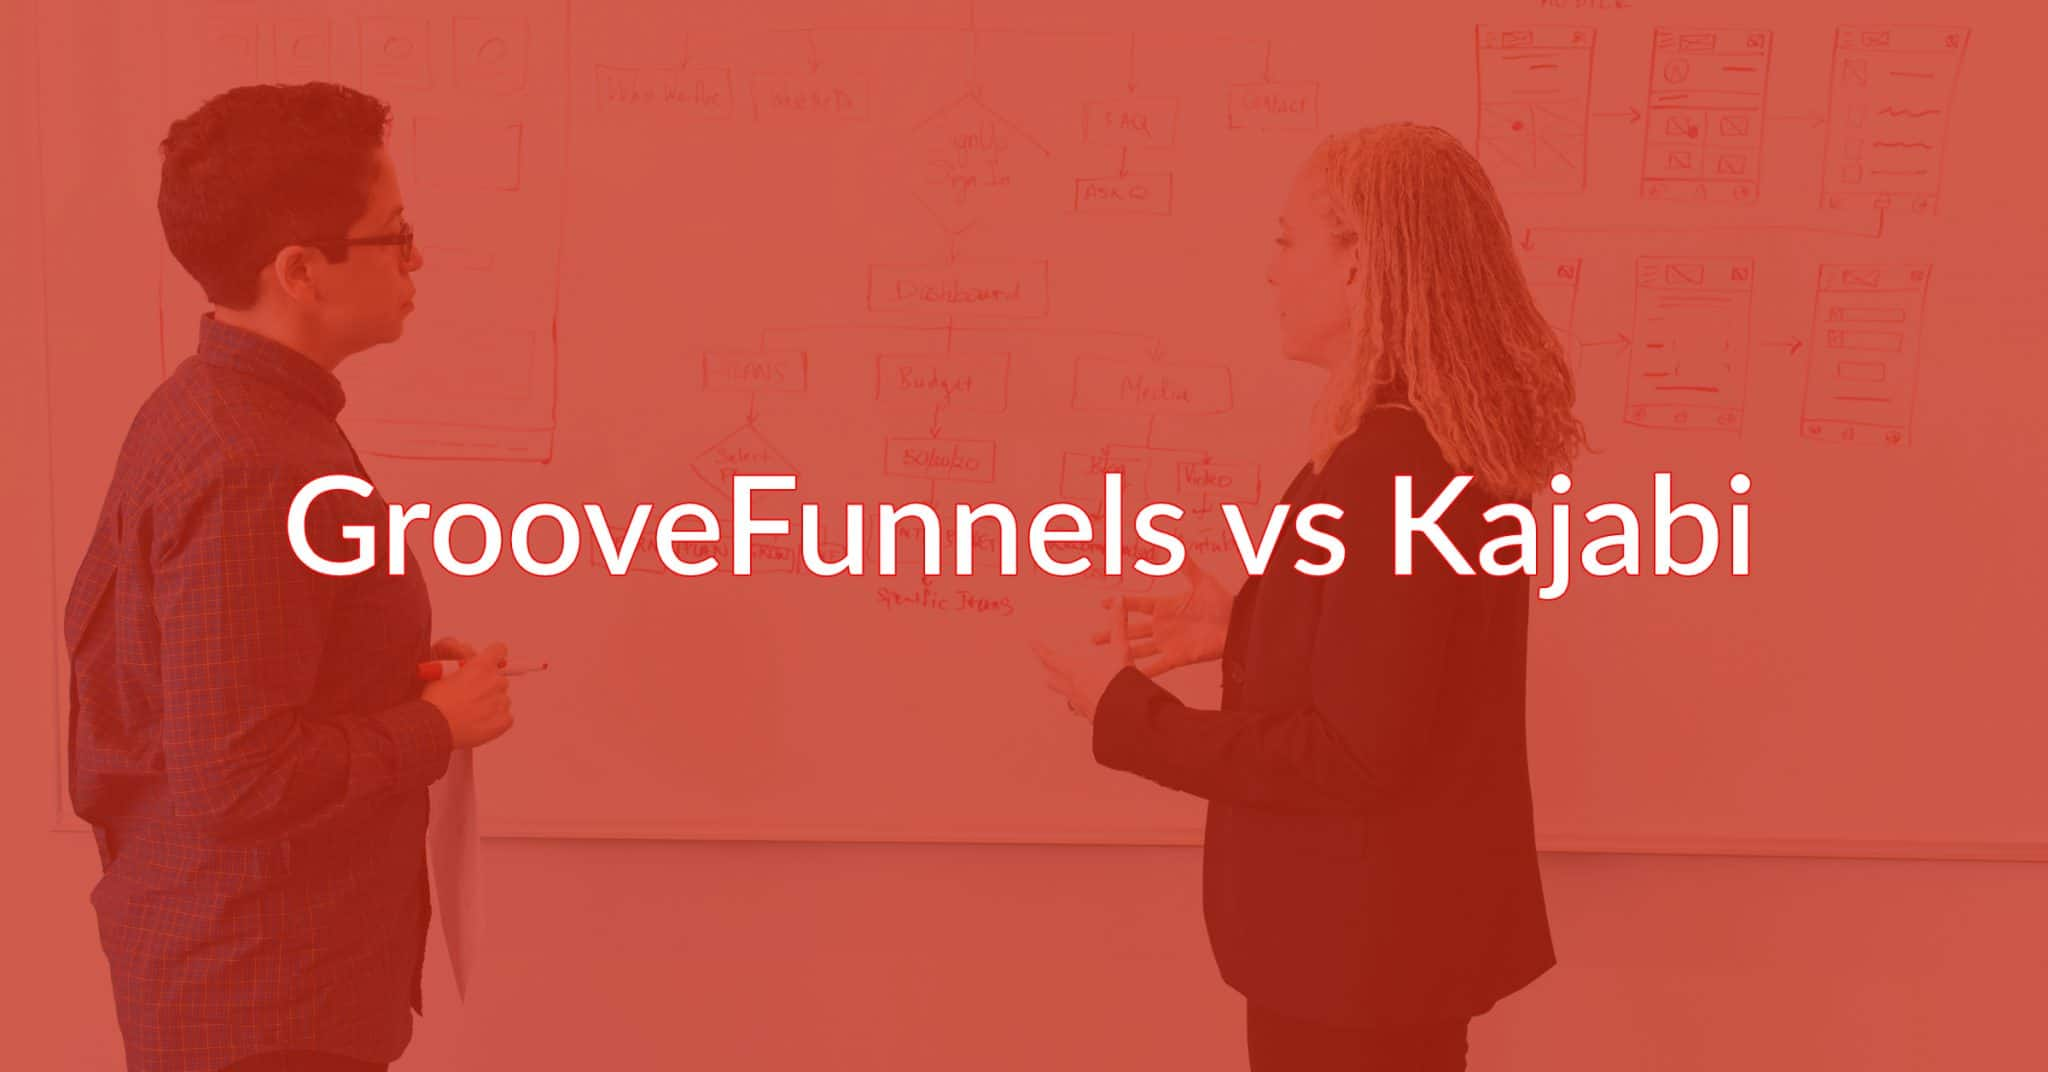 GrooveFunnels vs Kajabi: Which Platform Should You Choose?